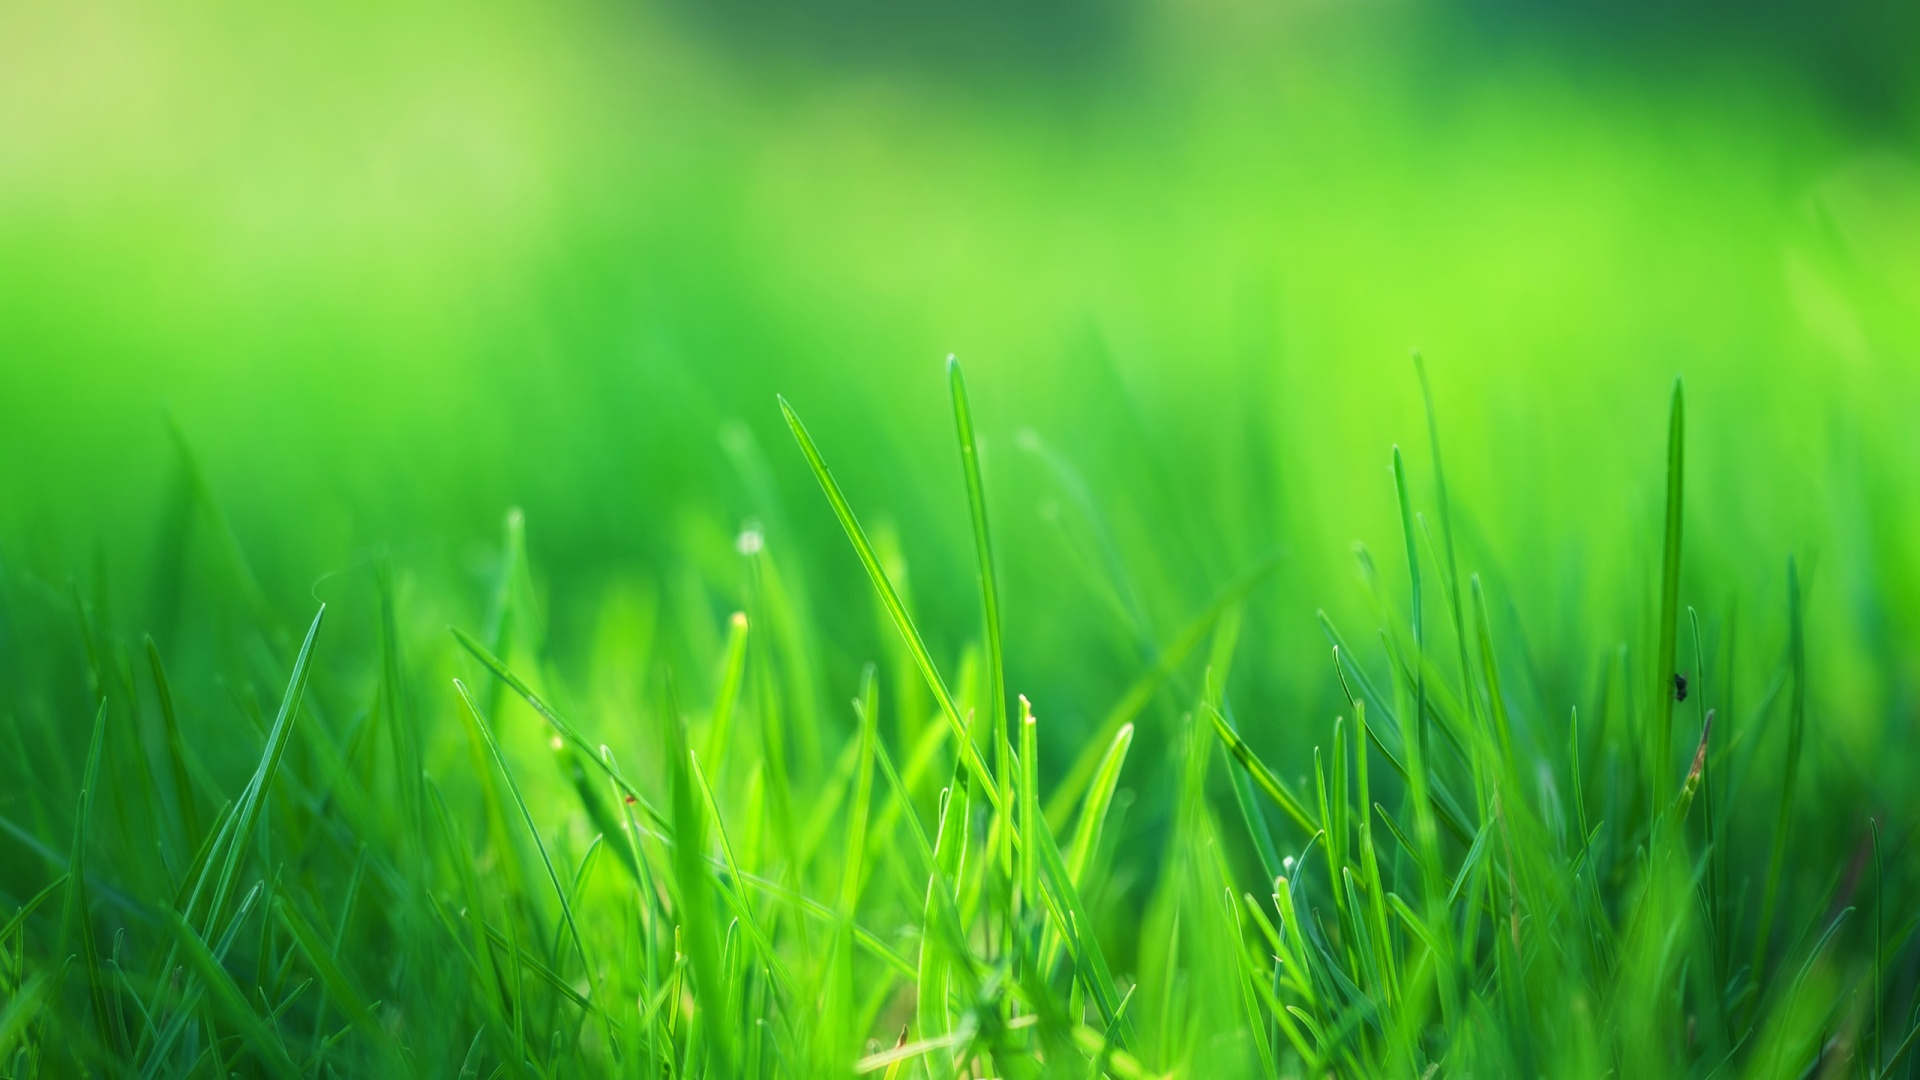 5735725_148841397983__downloadfiles_wallpapers_1920_1080_green_grass_field_.jpg